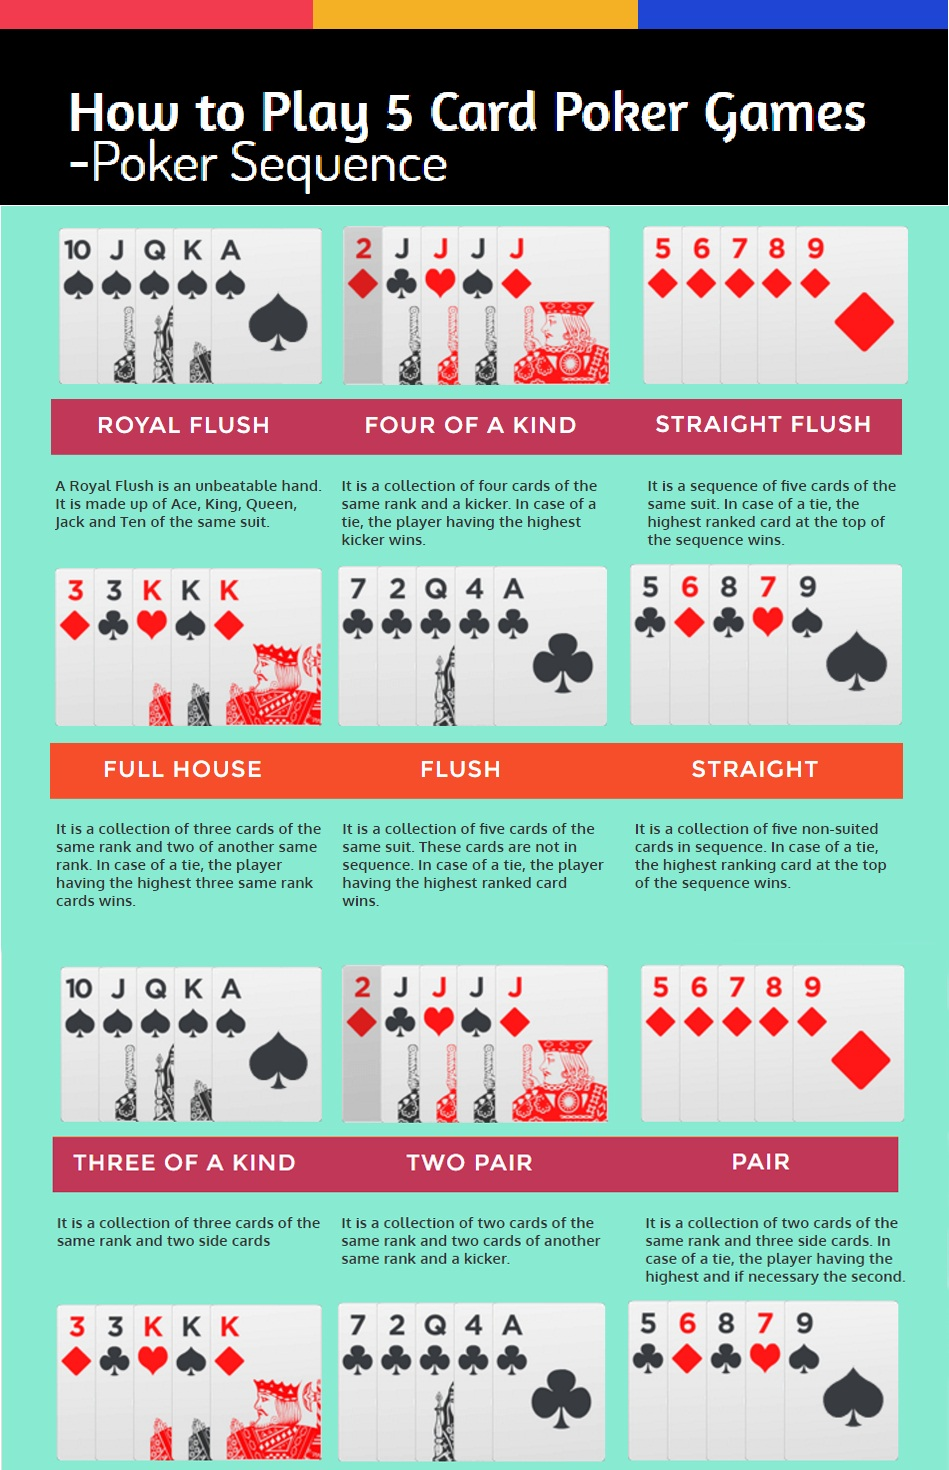 Pot limit hold'em betting rules